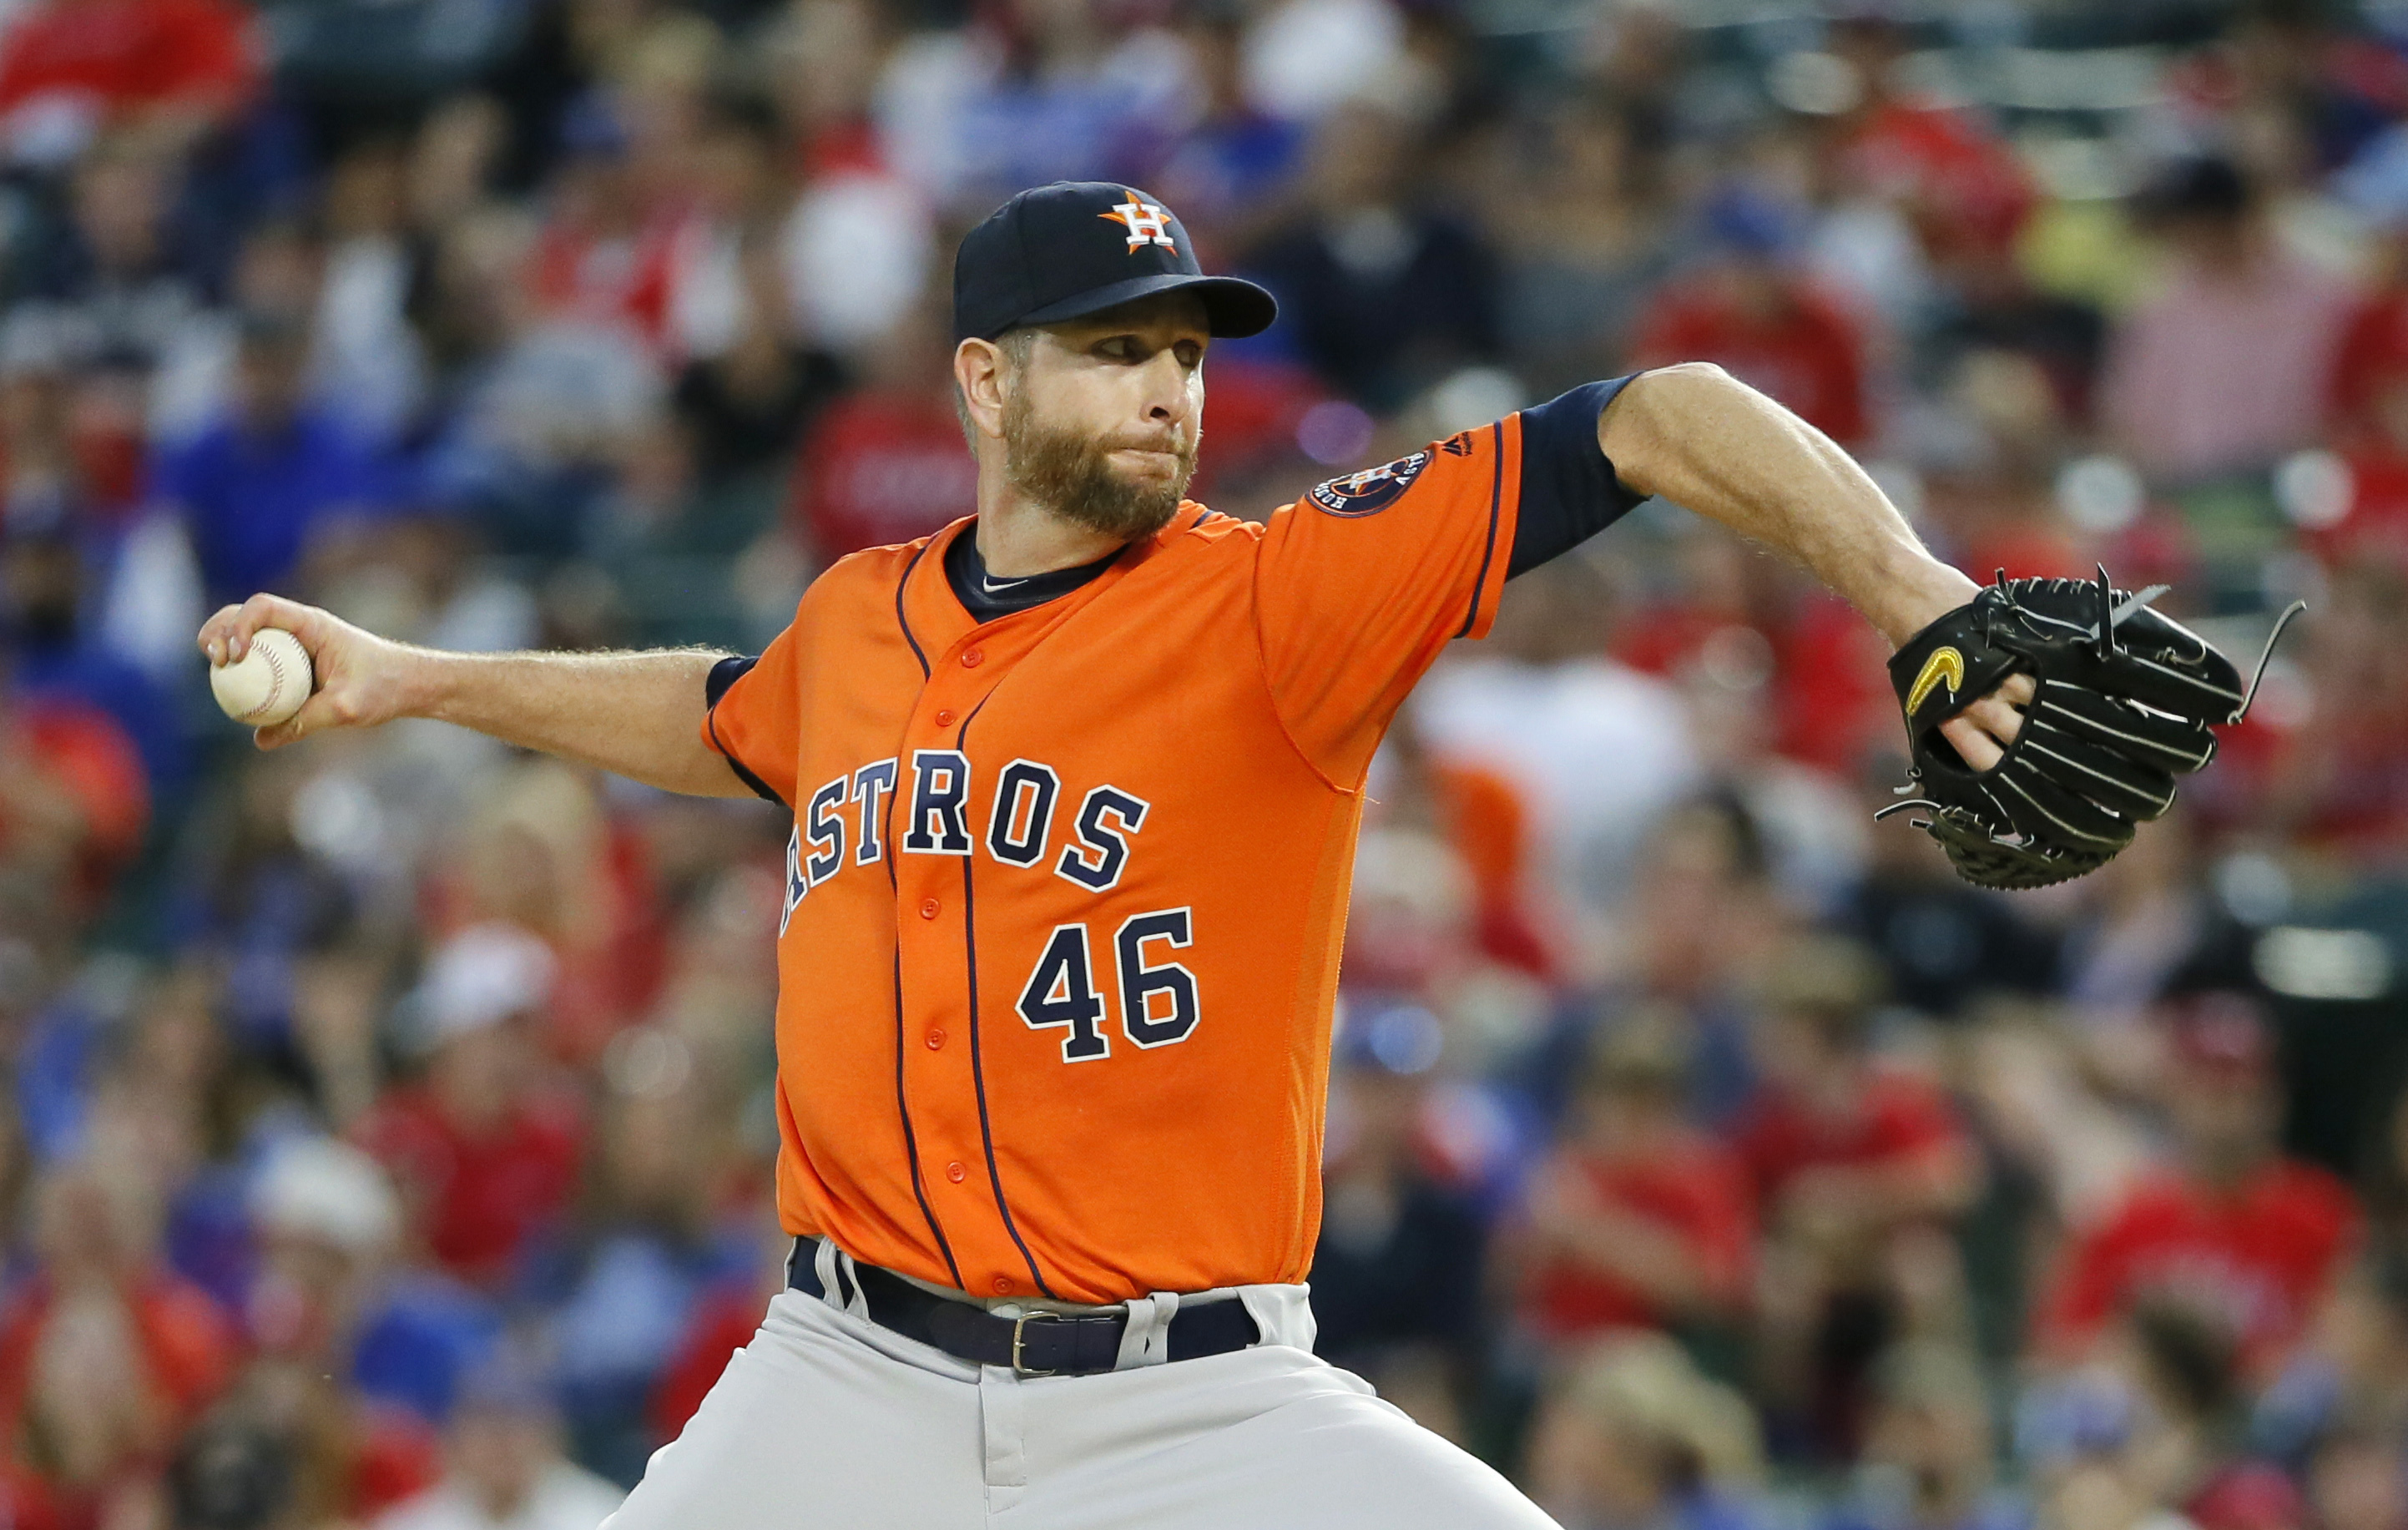 FILE - This April 19, 2016 file photo shows Houston Astros starting pitcher Scott Feldman working against the Texas Rangers in the second inning of a baseball game in Arlington, Texas. The Toronto Blue Jays have acquired right-hander Scott Feldman from th